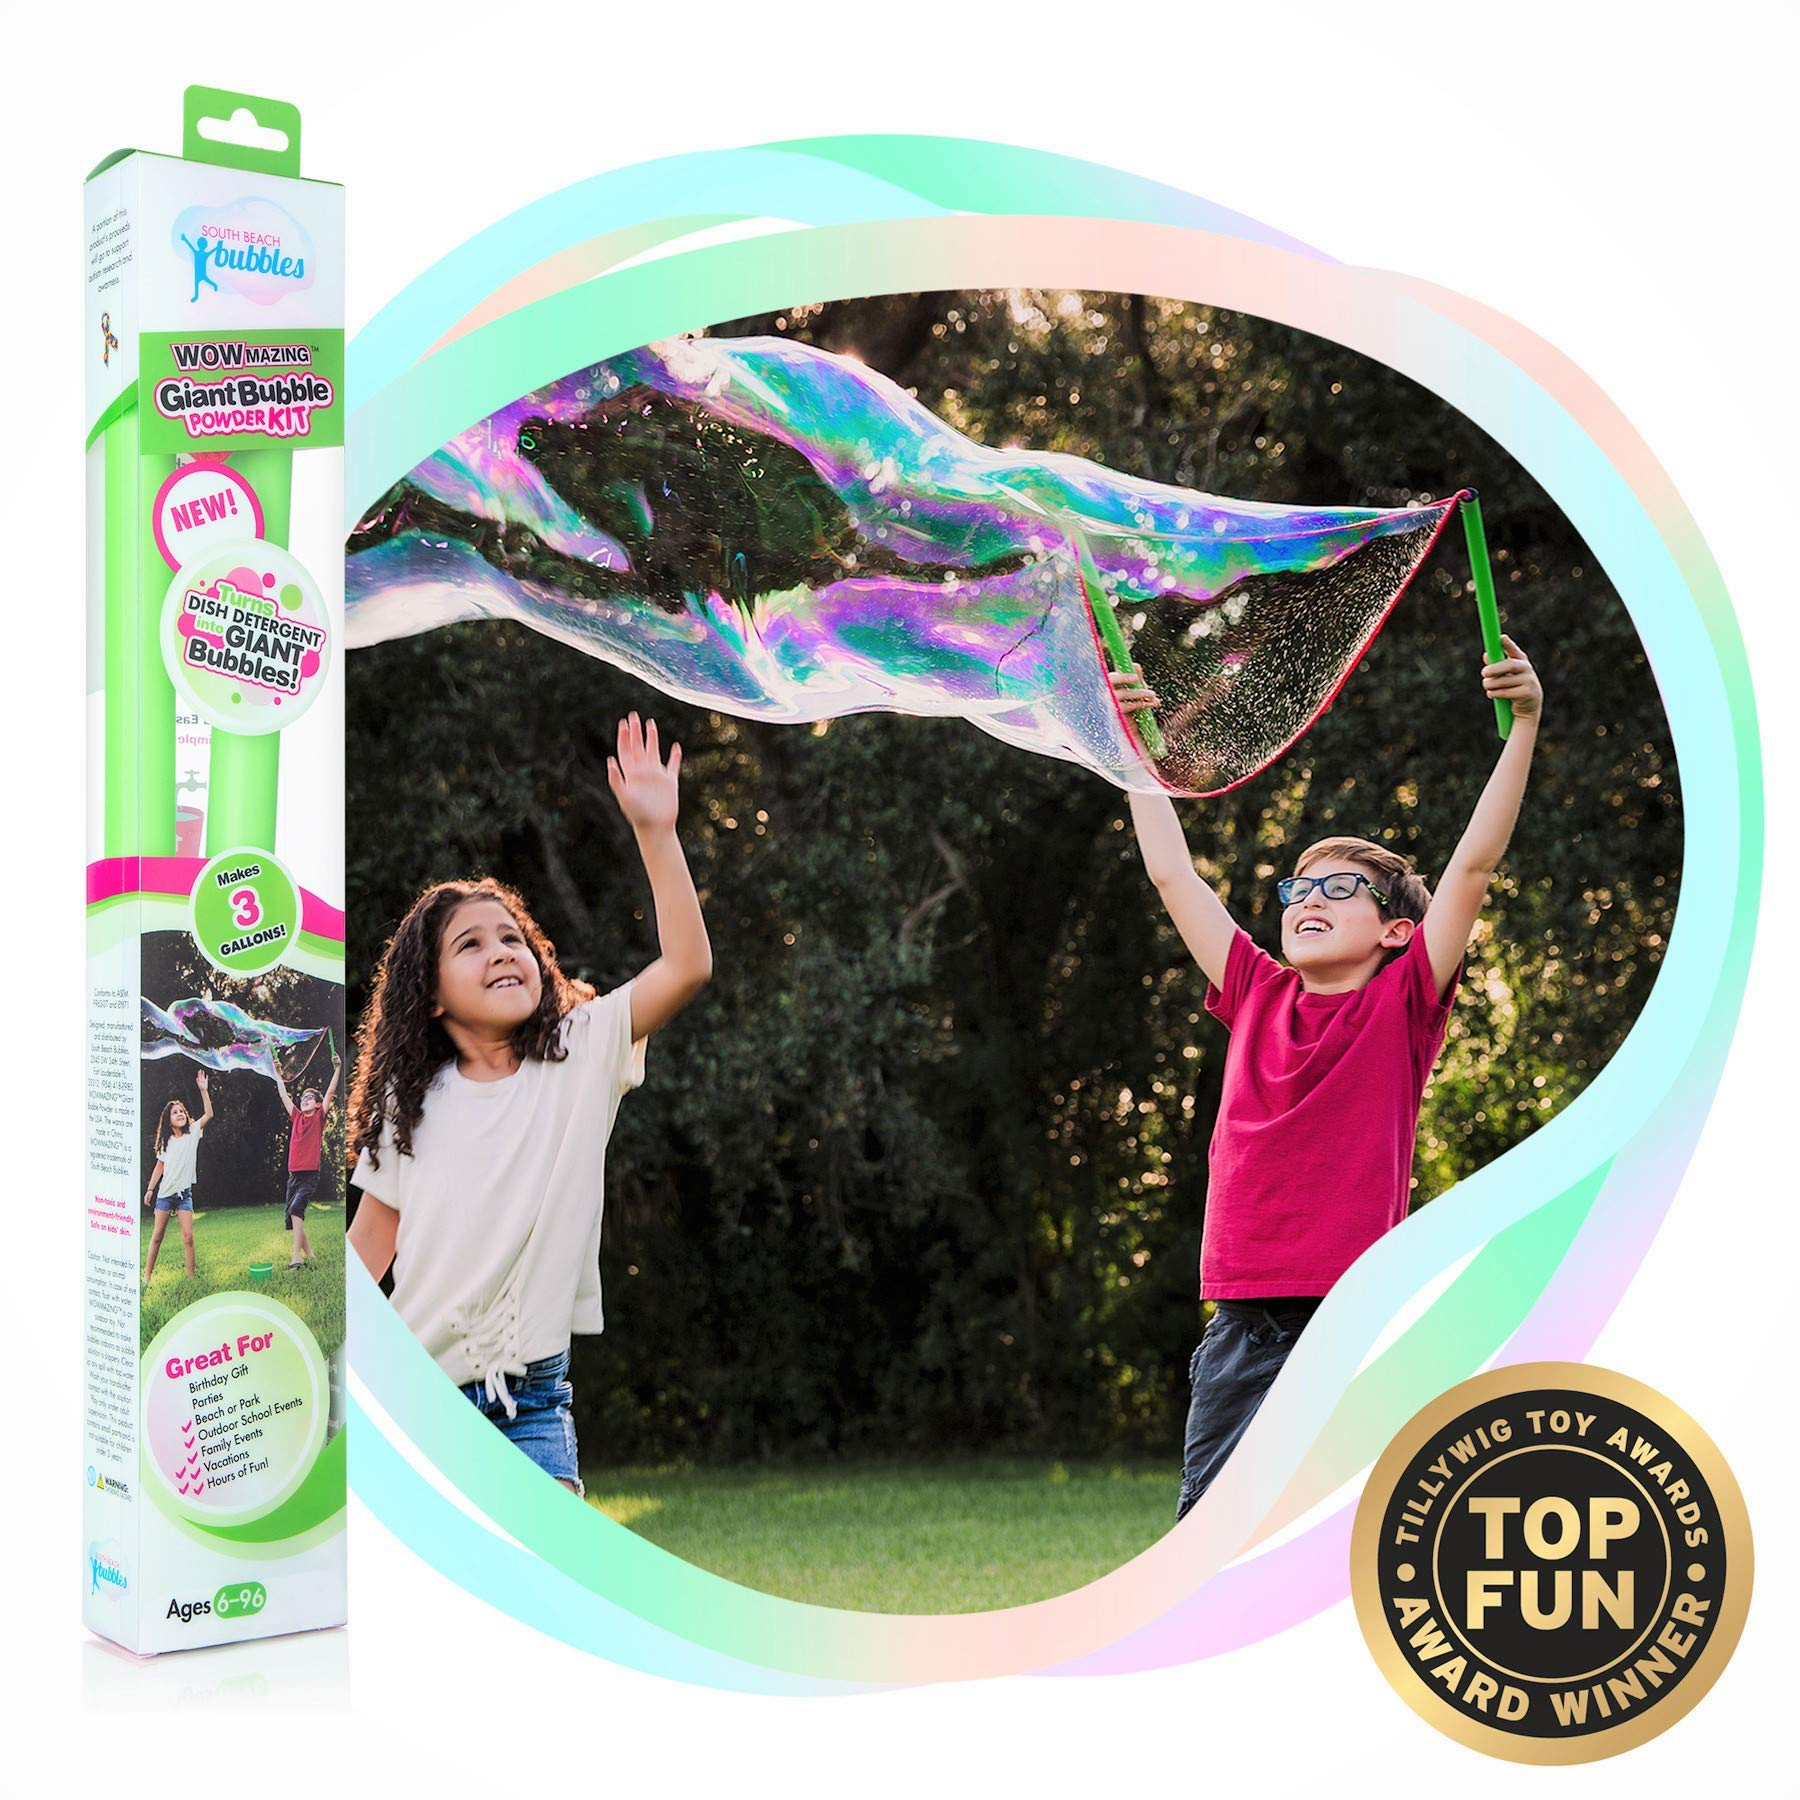 WOWMAZING Giant Bubble Powder Kit: Include Large Bubble Wand and 3 Packet of Big Bubble Powder (Makes 3 Gallons) - Outdoor Toy for Kids, Boys, Girls - Powder Made in USA